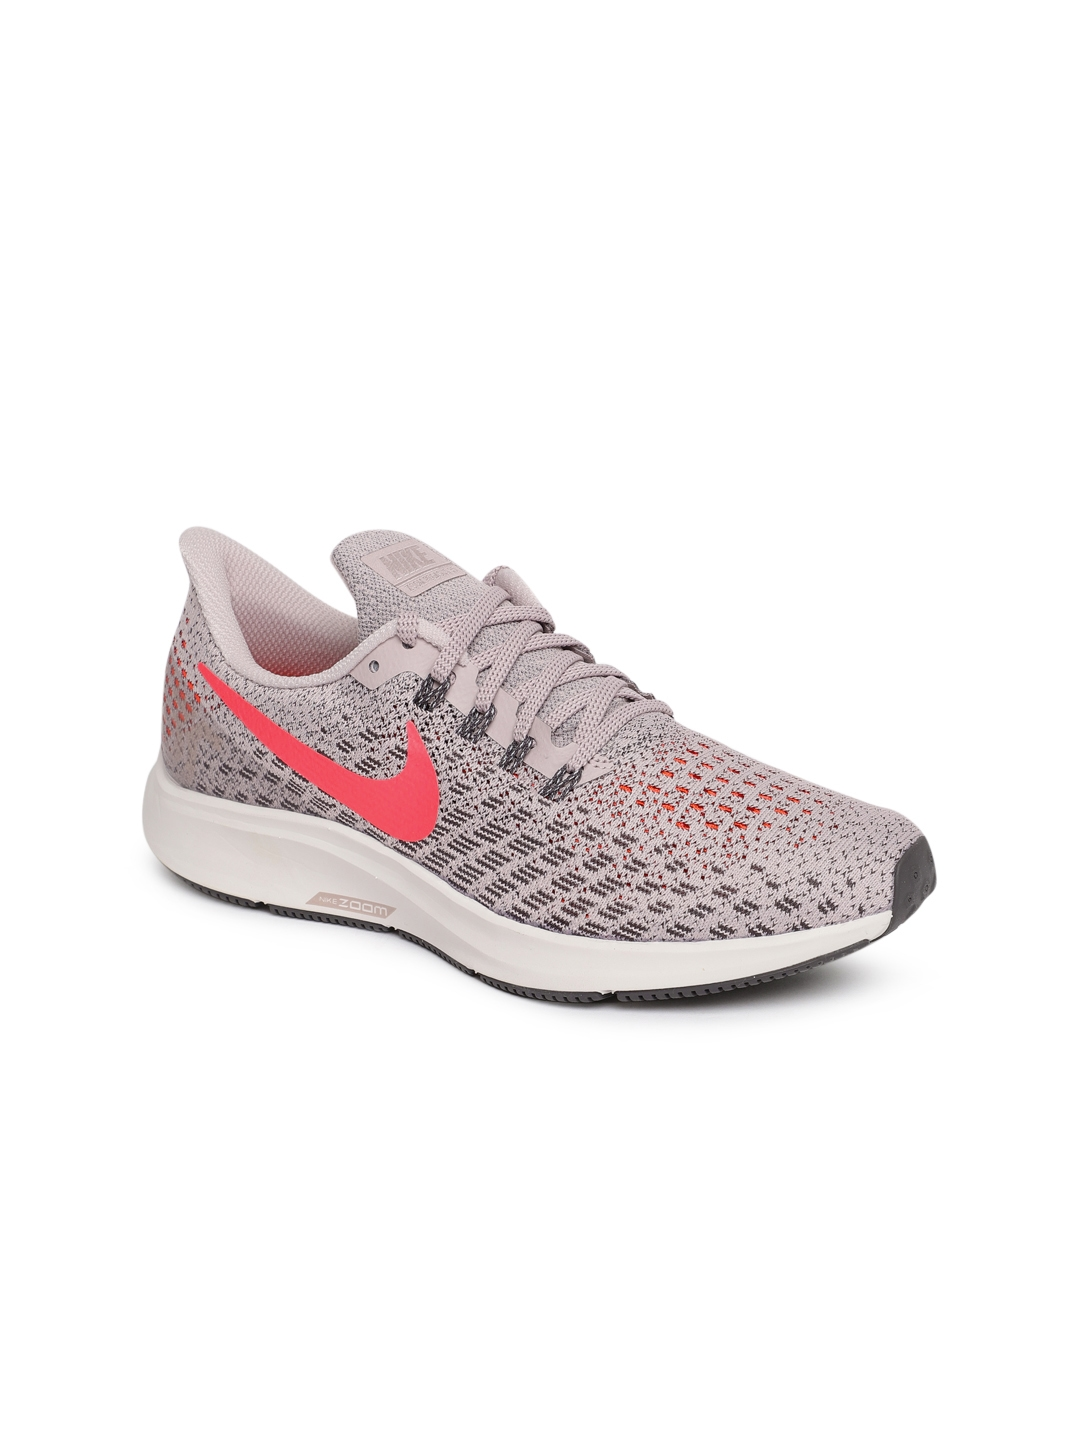 457f7e62b3f04 Buy Nike Womens Air Zoom Pegasus 35 Running Shoes - Sports Shoes for ...